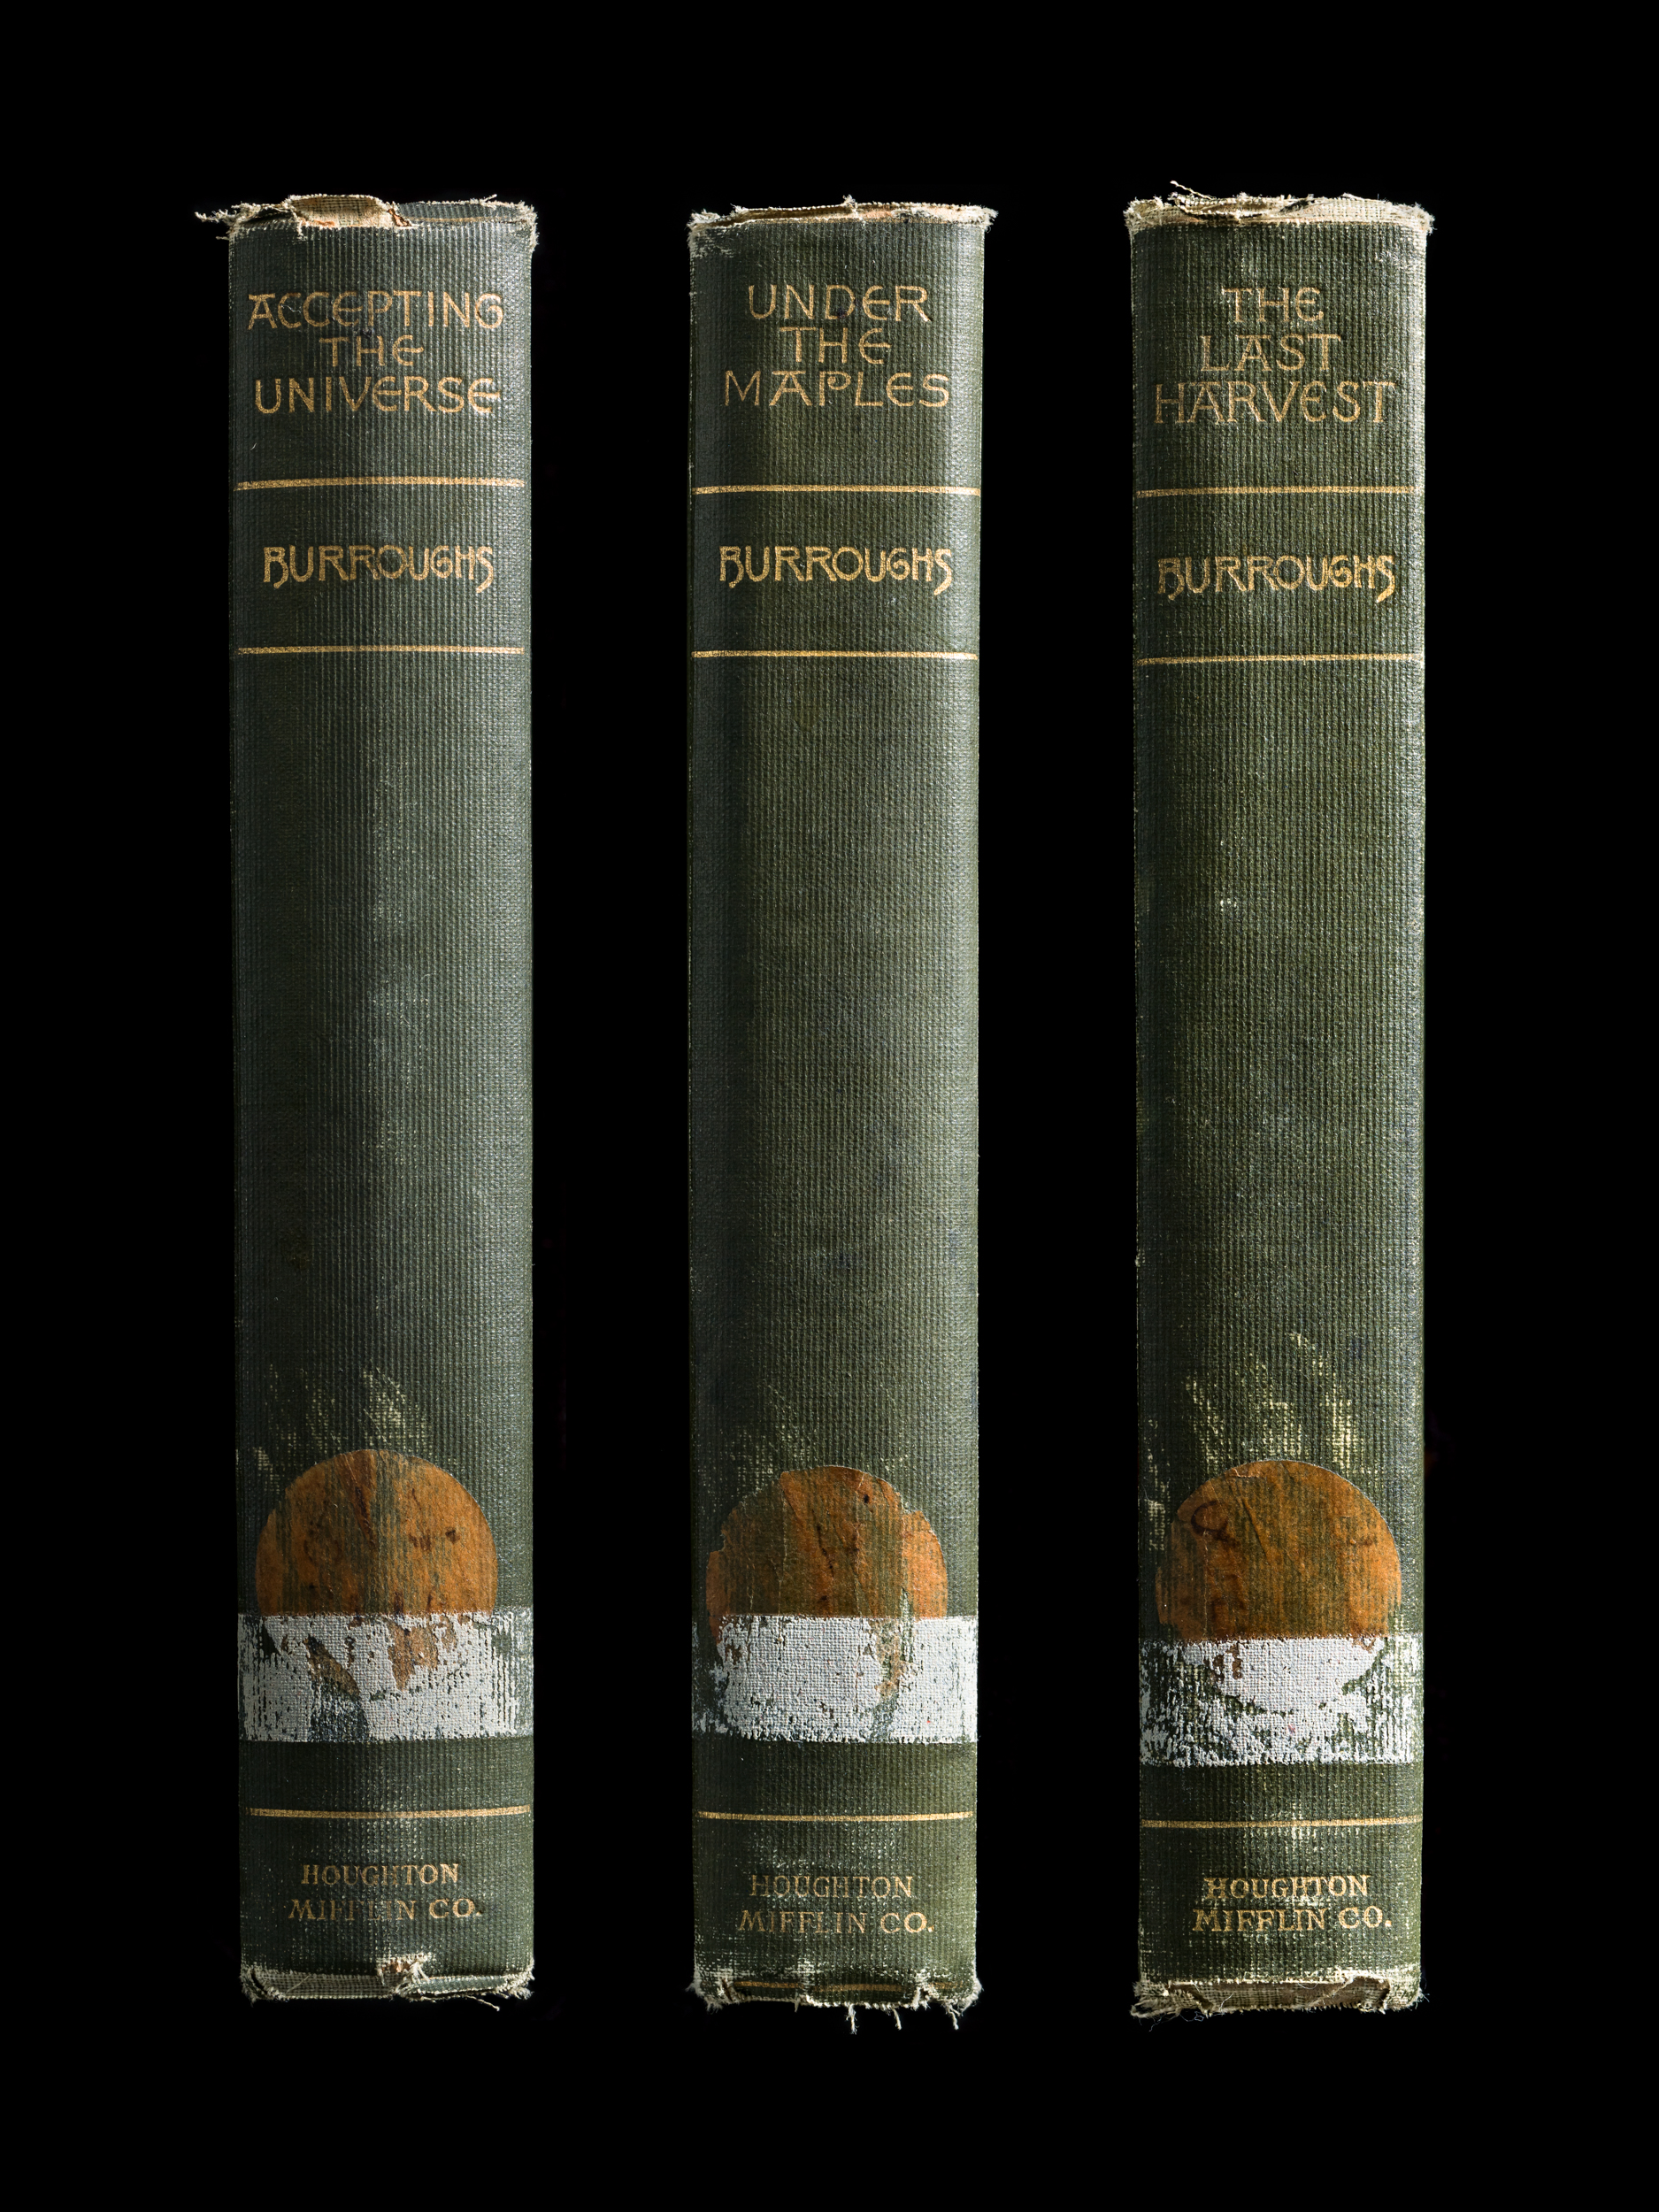 Mansfield_Expired_Spines_10.jpg